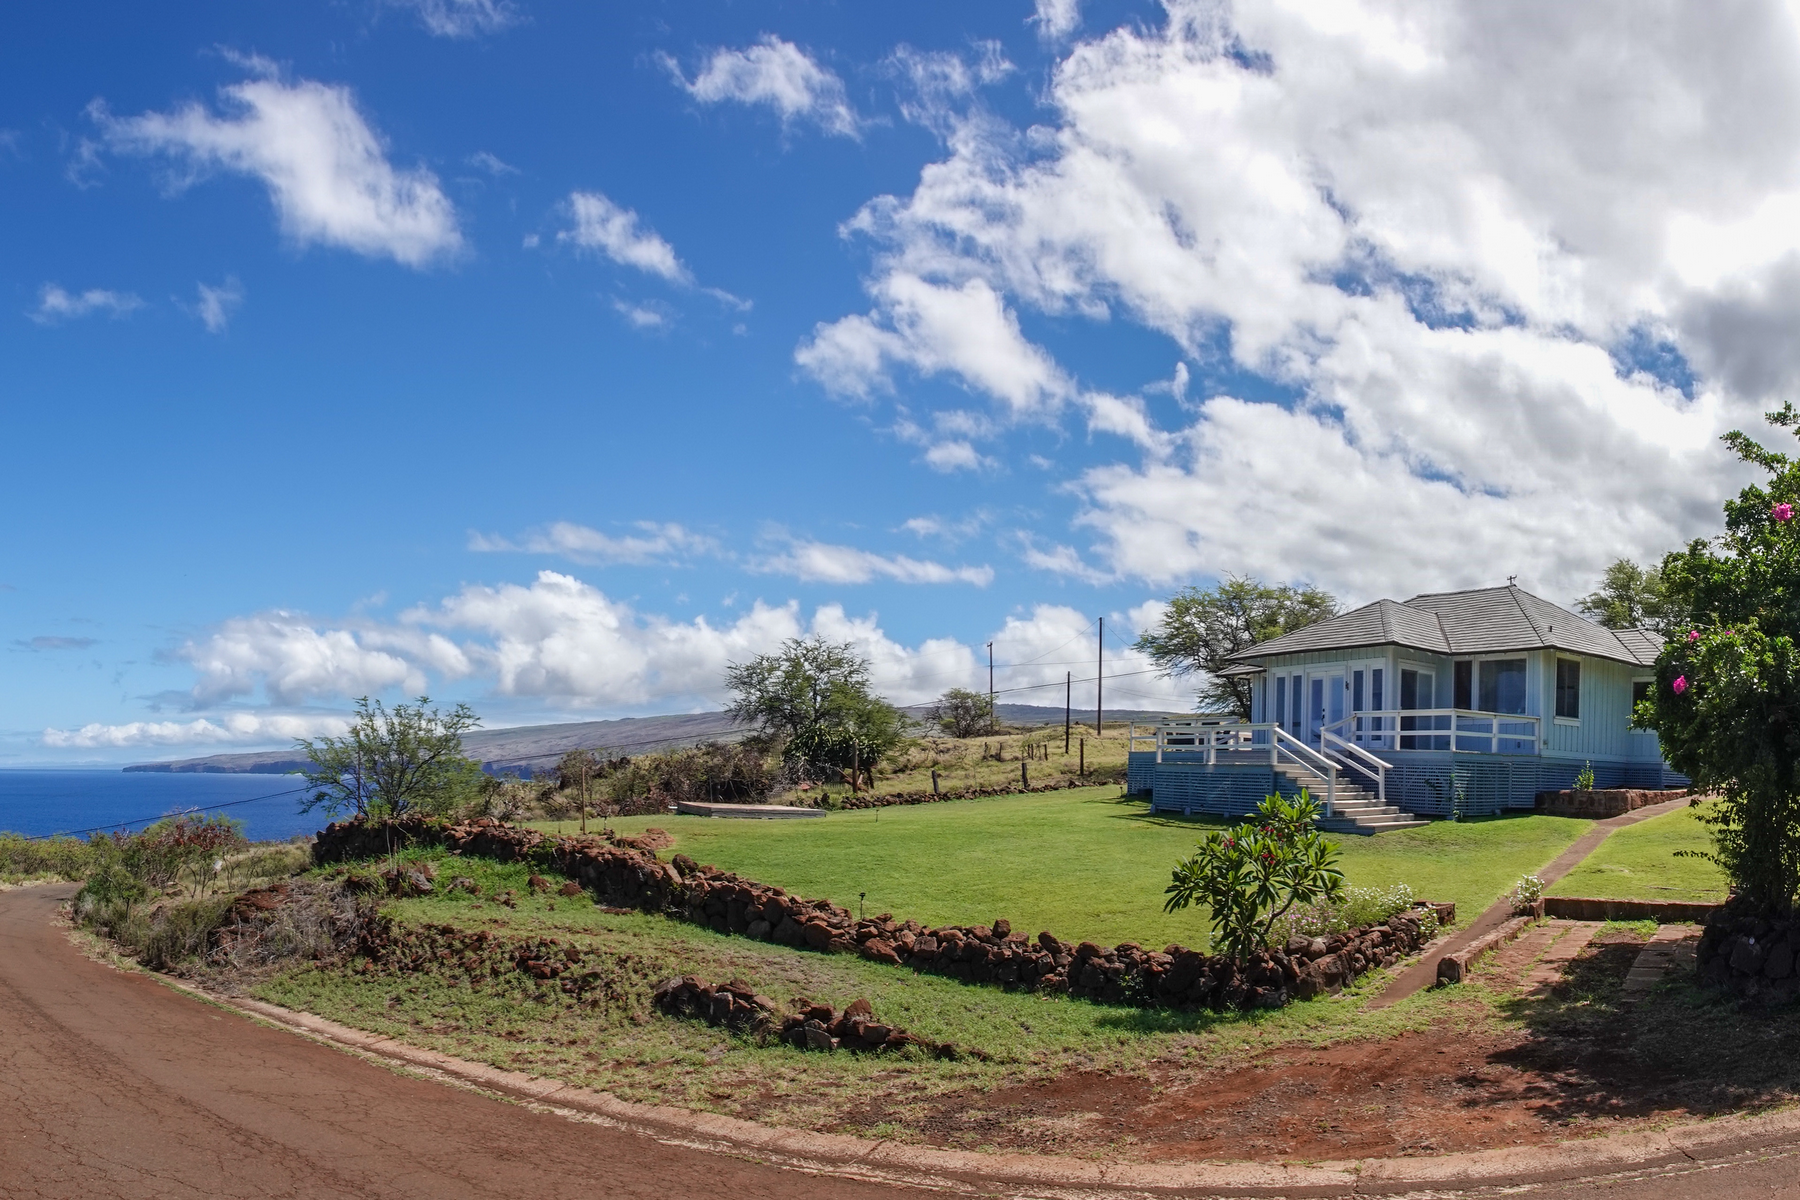 Single Family Homes for Active at Kaumalapau Ocean Vistas 46 Kaumalapau Rd Lanai City, Hawaii 96763 United States